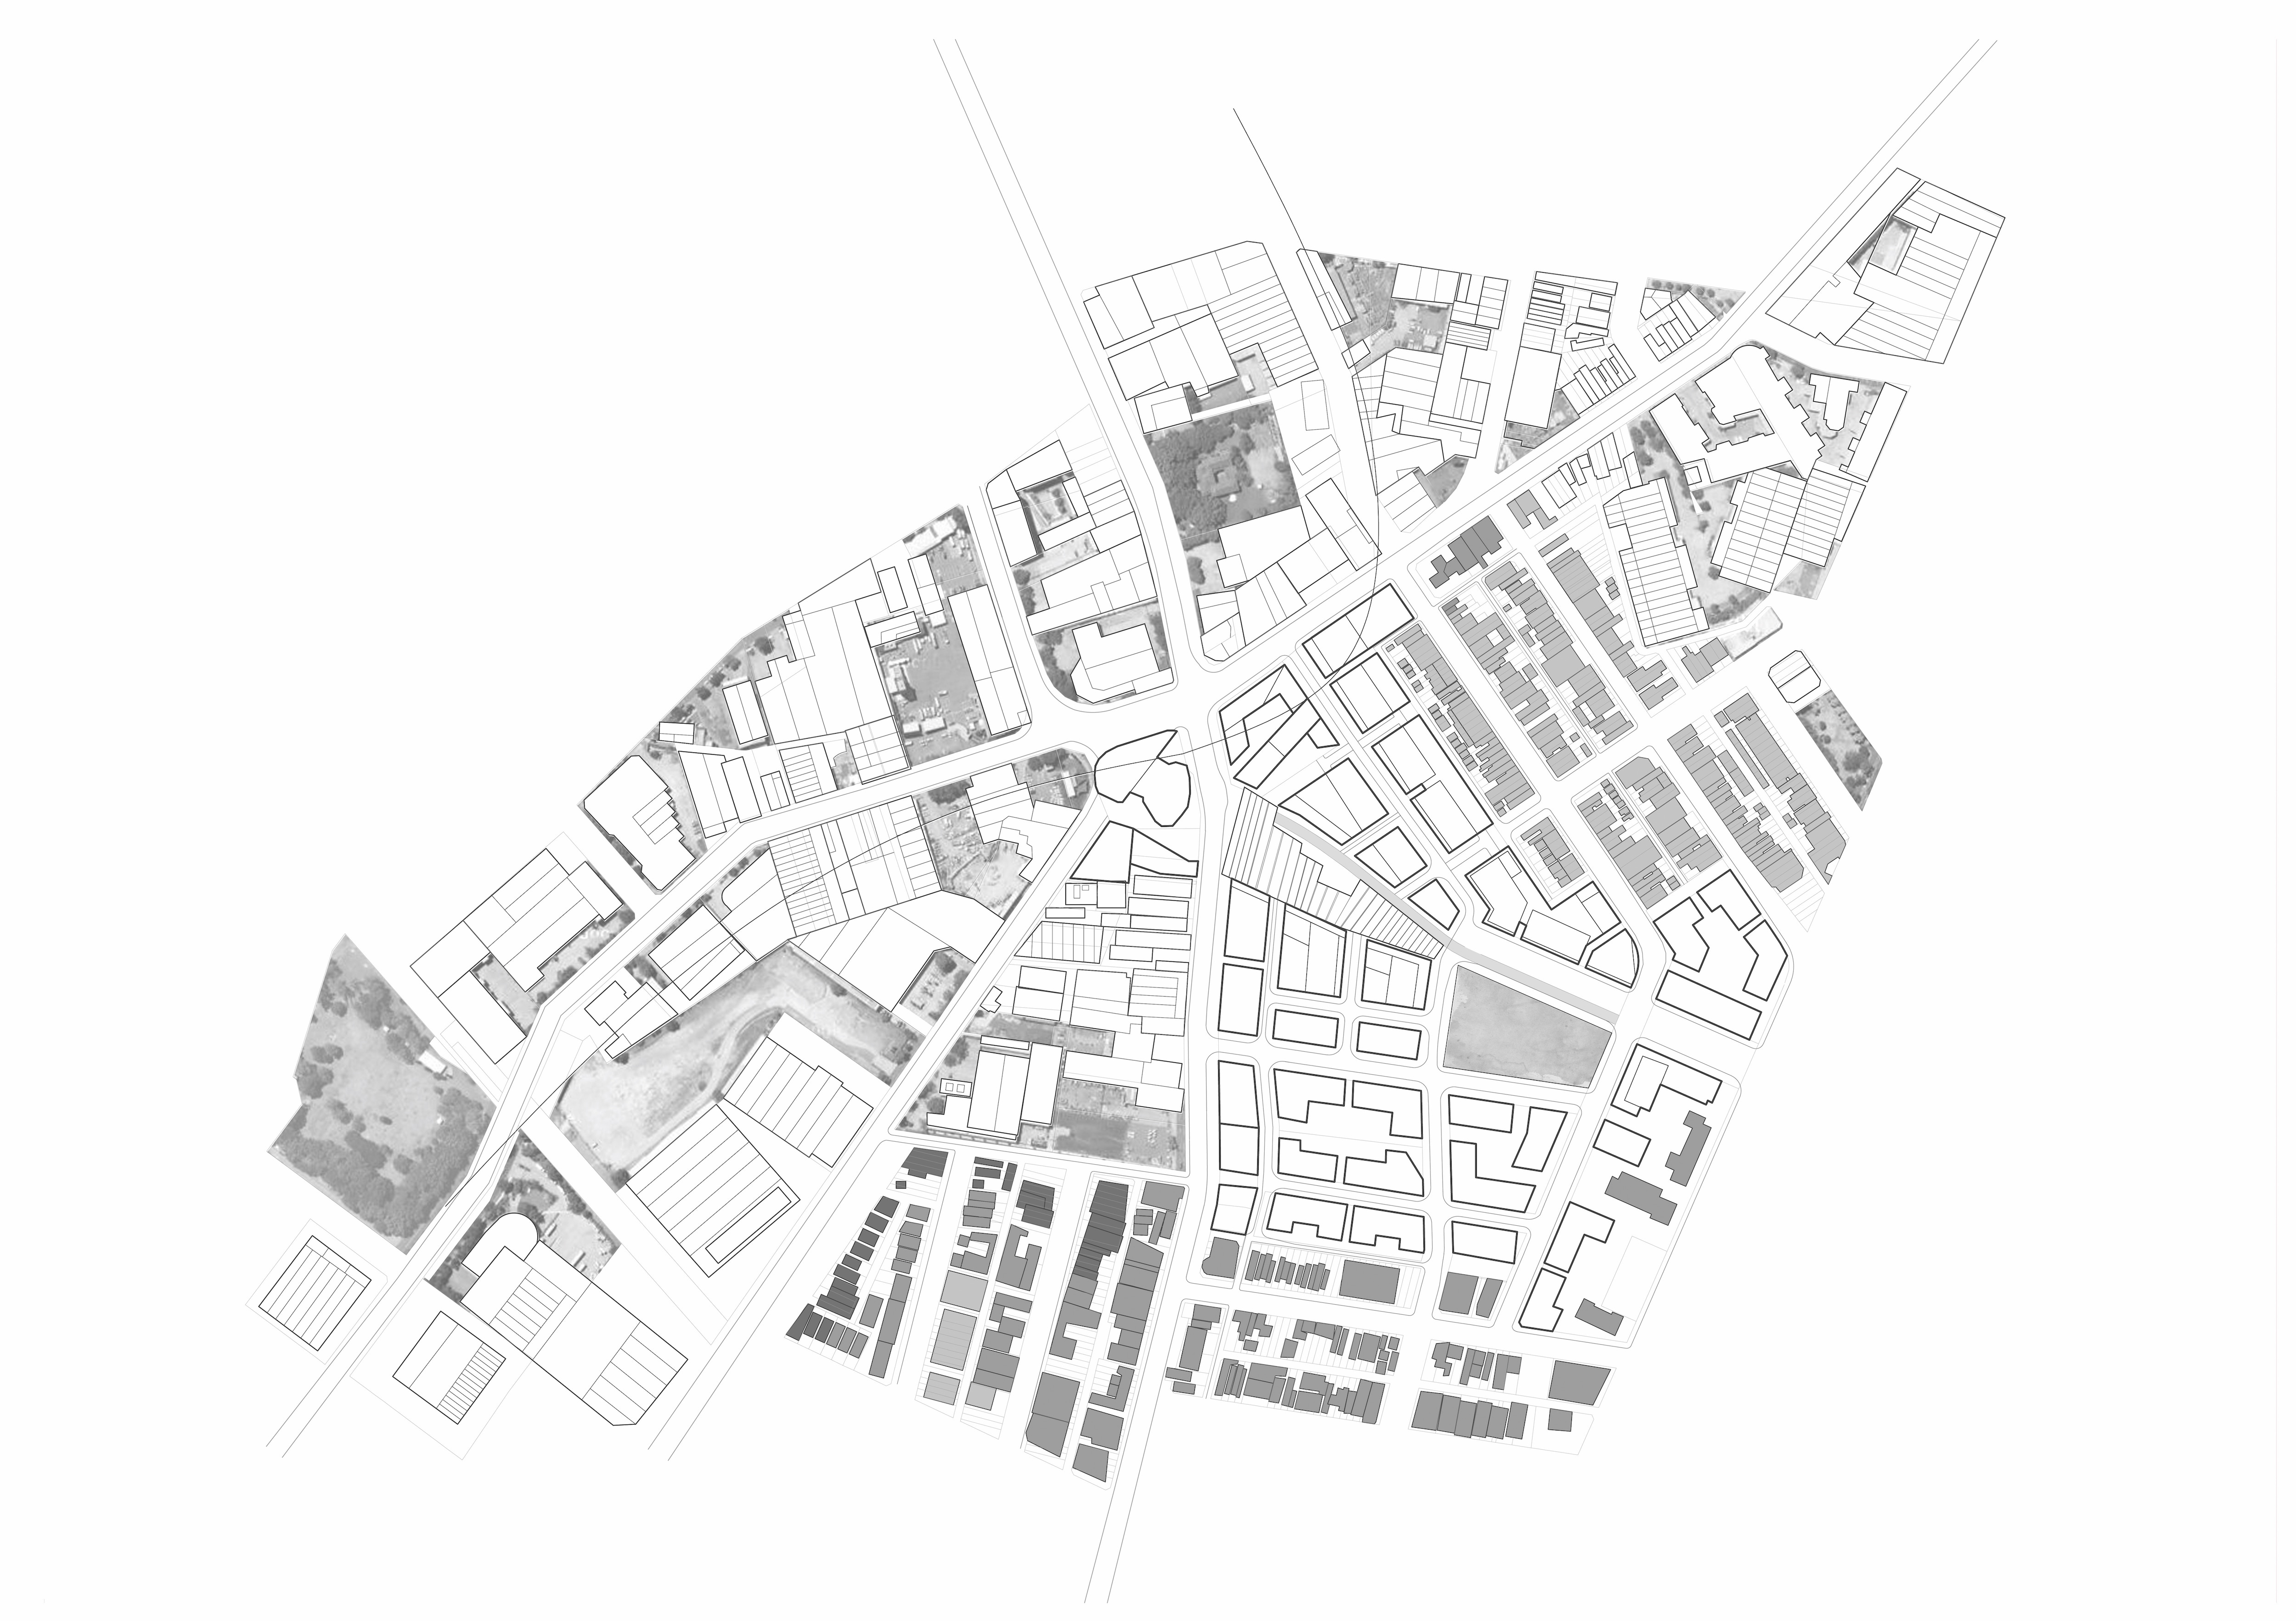 Urbanism Research The University Of Sydney School Of Architecture Design And Planning